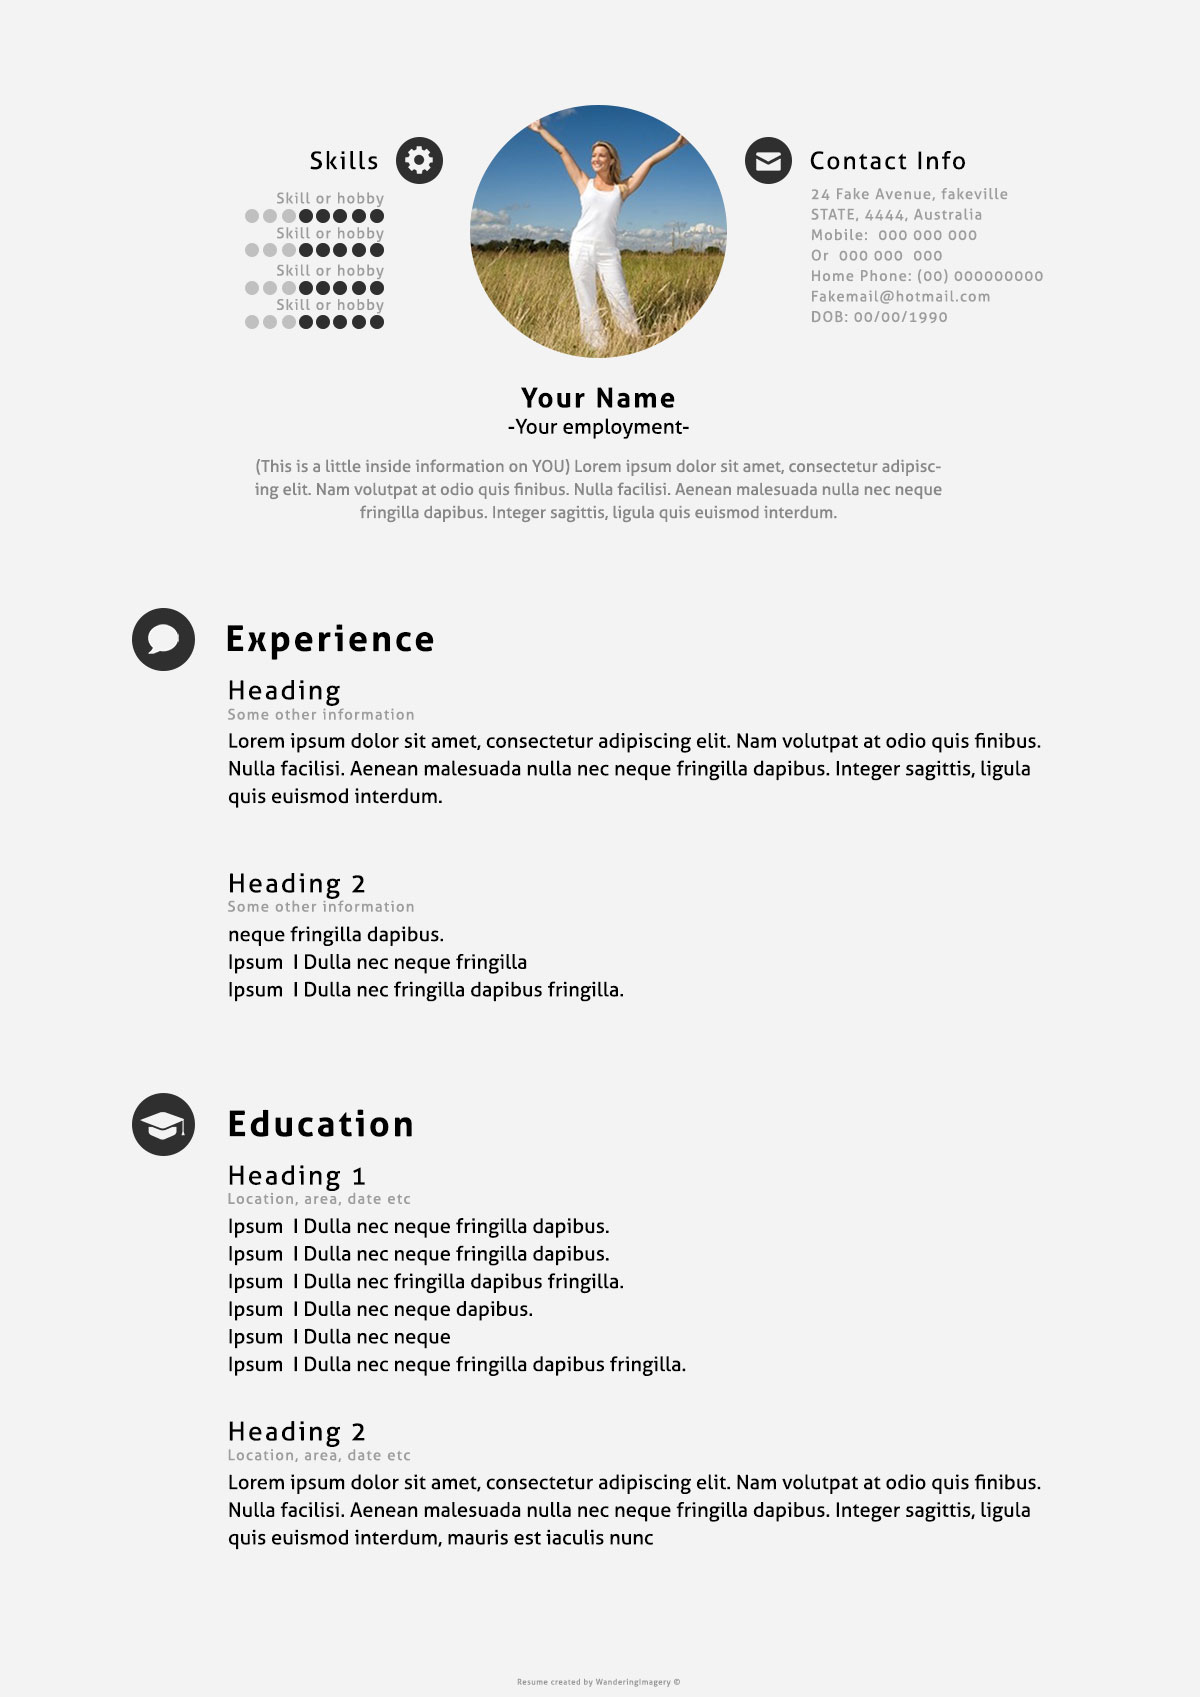 Download-Free-Simple-PSD-Resume-Template